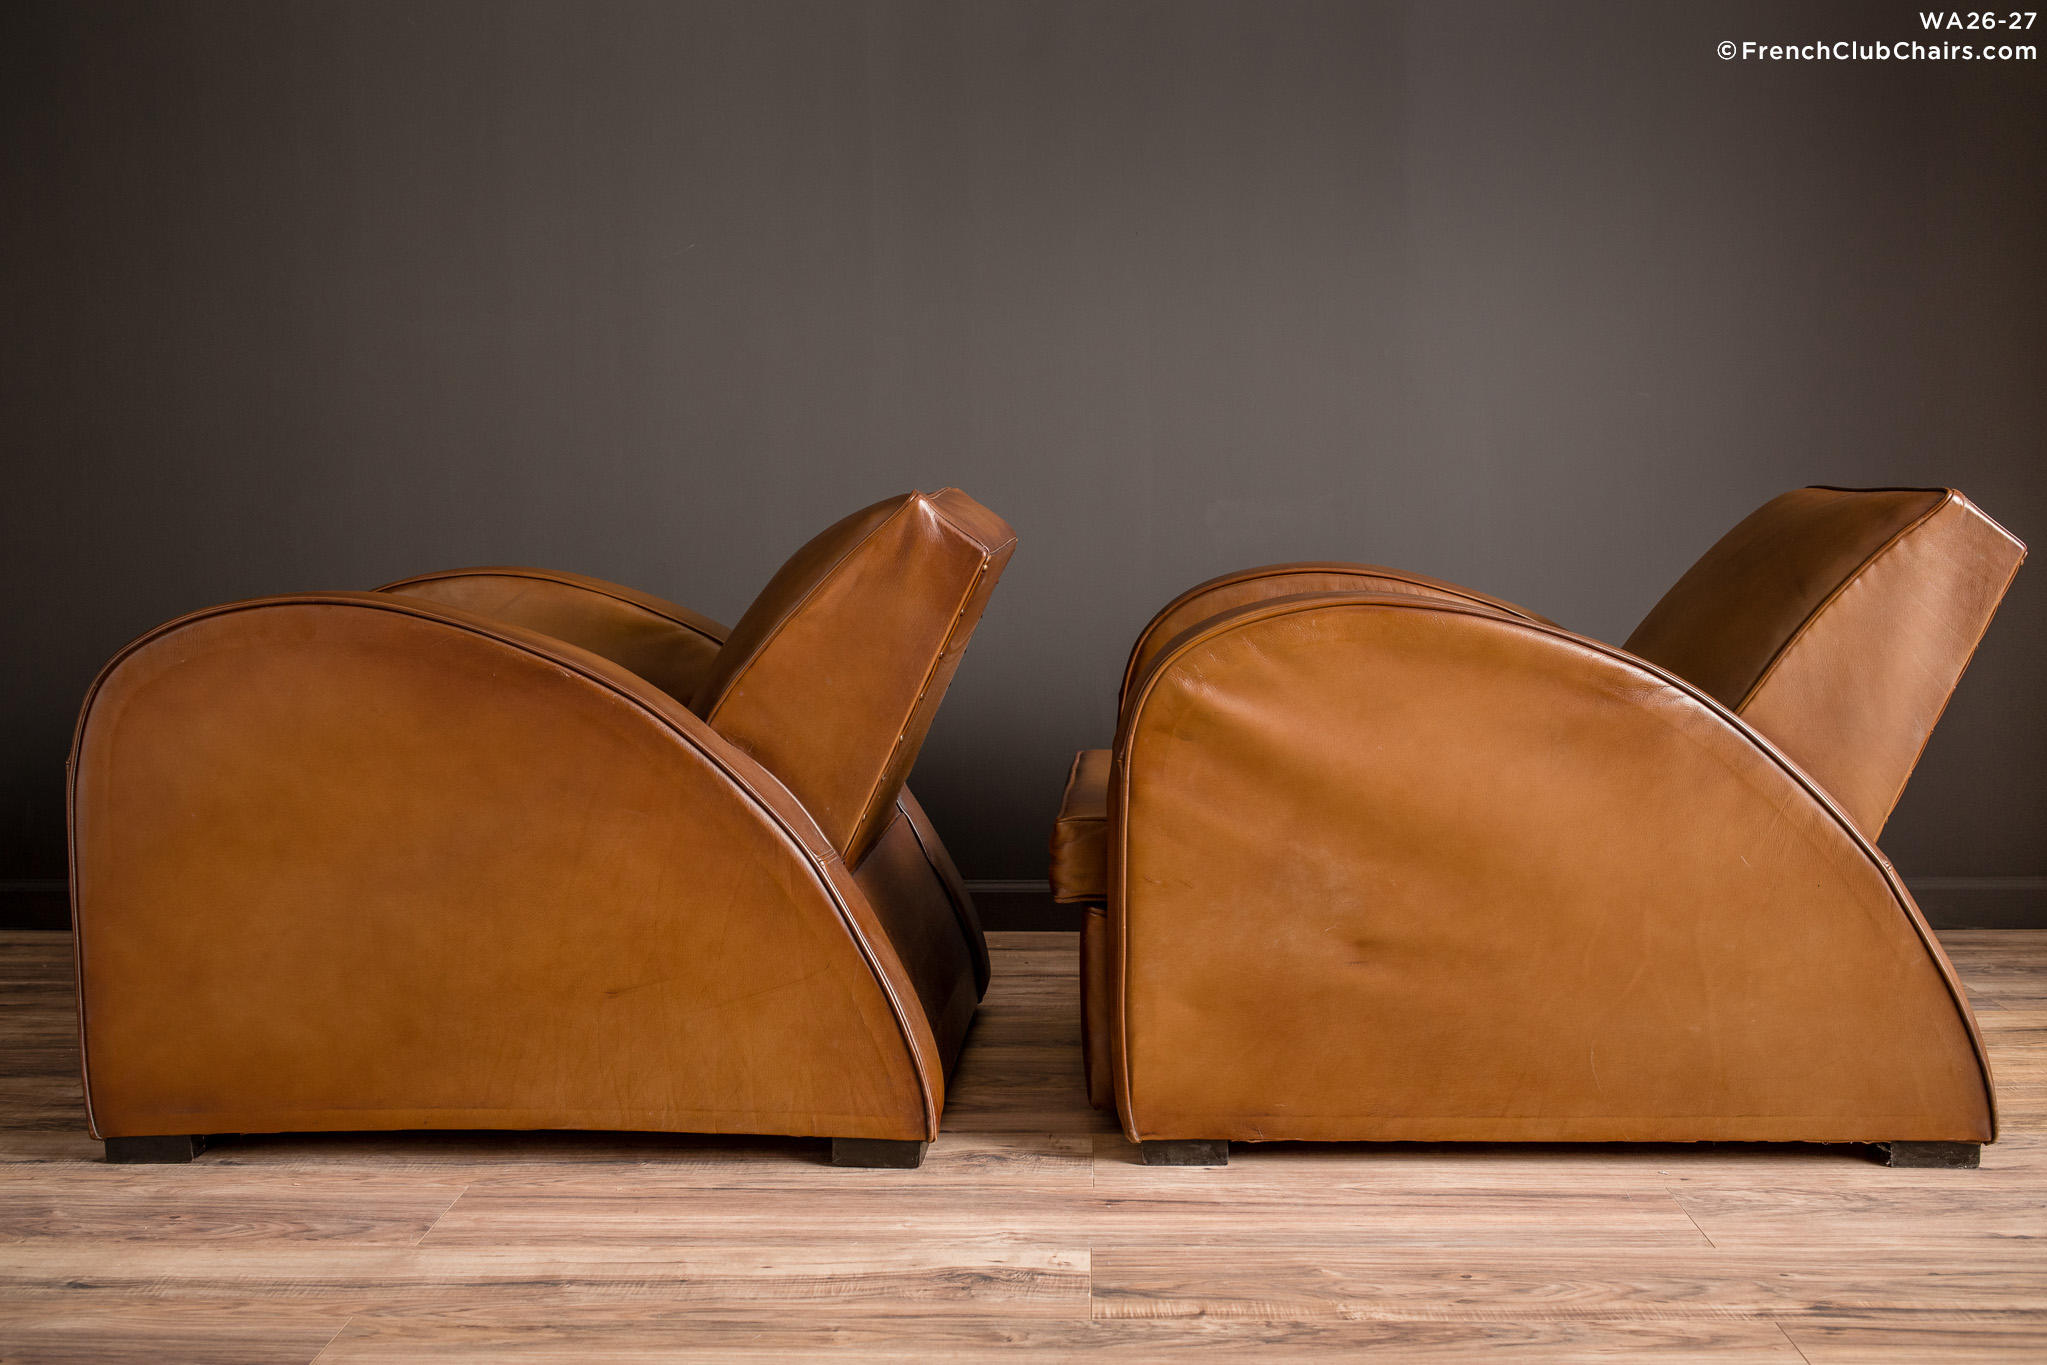 WA_26-27_Streamline_Classic_Square_Pair_R_4LT-v01-williams-antiks-leather-french-club-chair-wa_fcccom